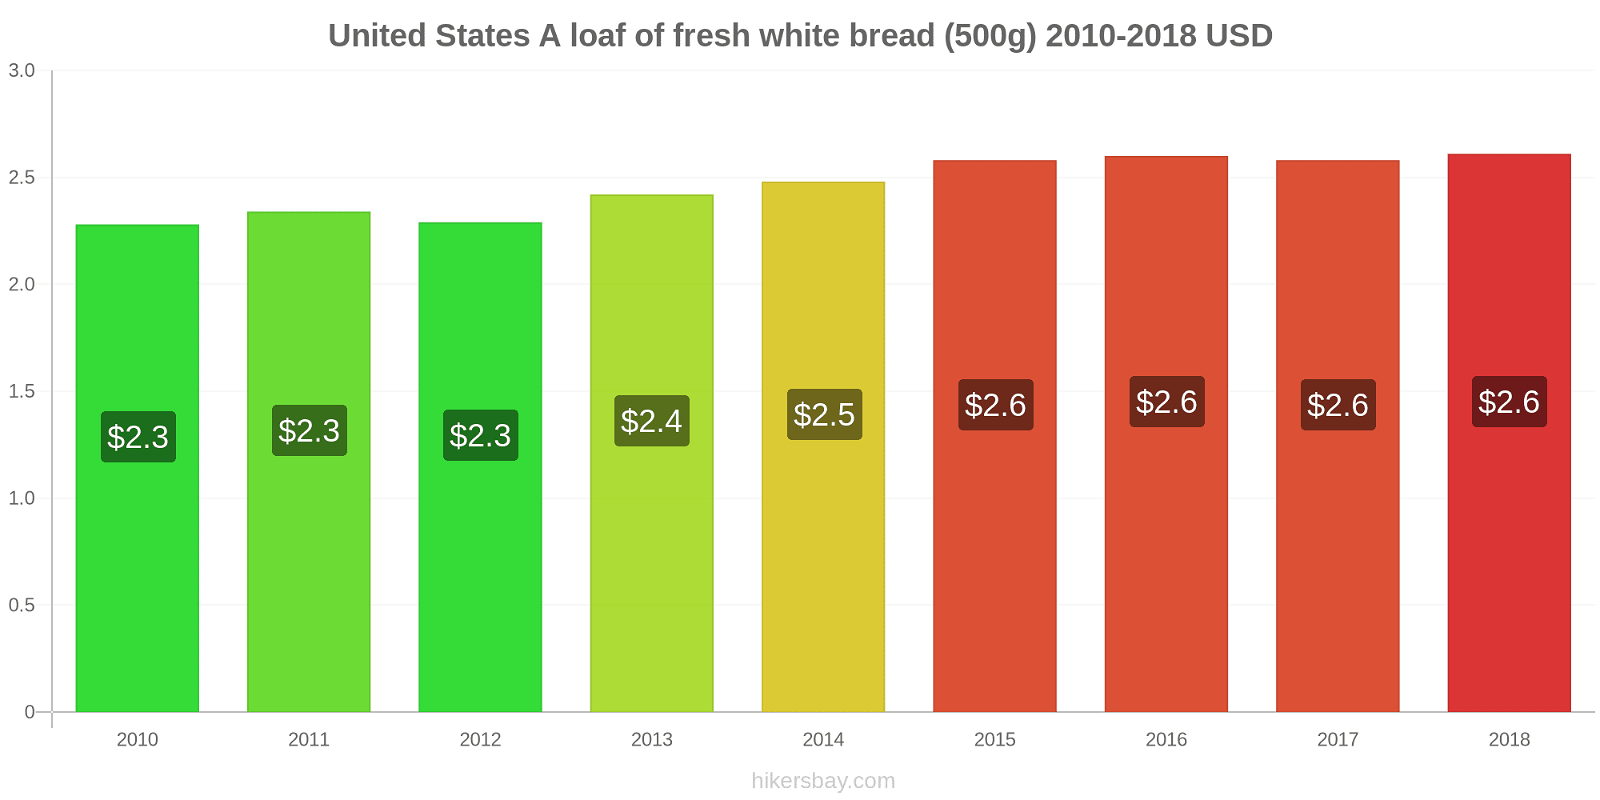 United States price changes A loaf of fresh white bread (500g) hikersbay.com